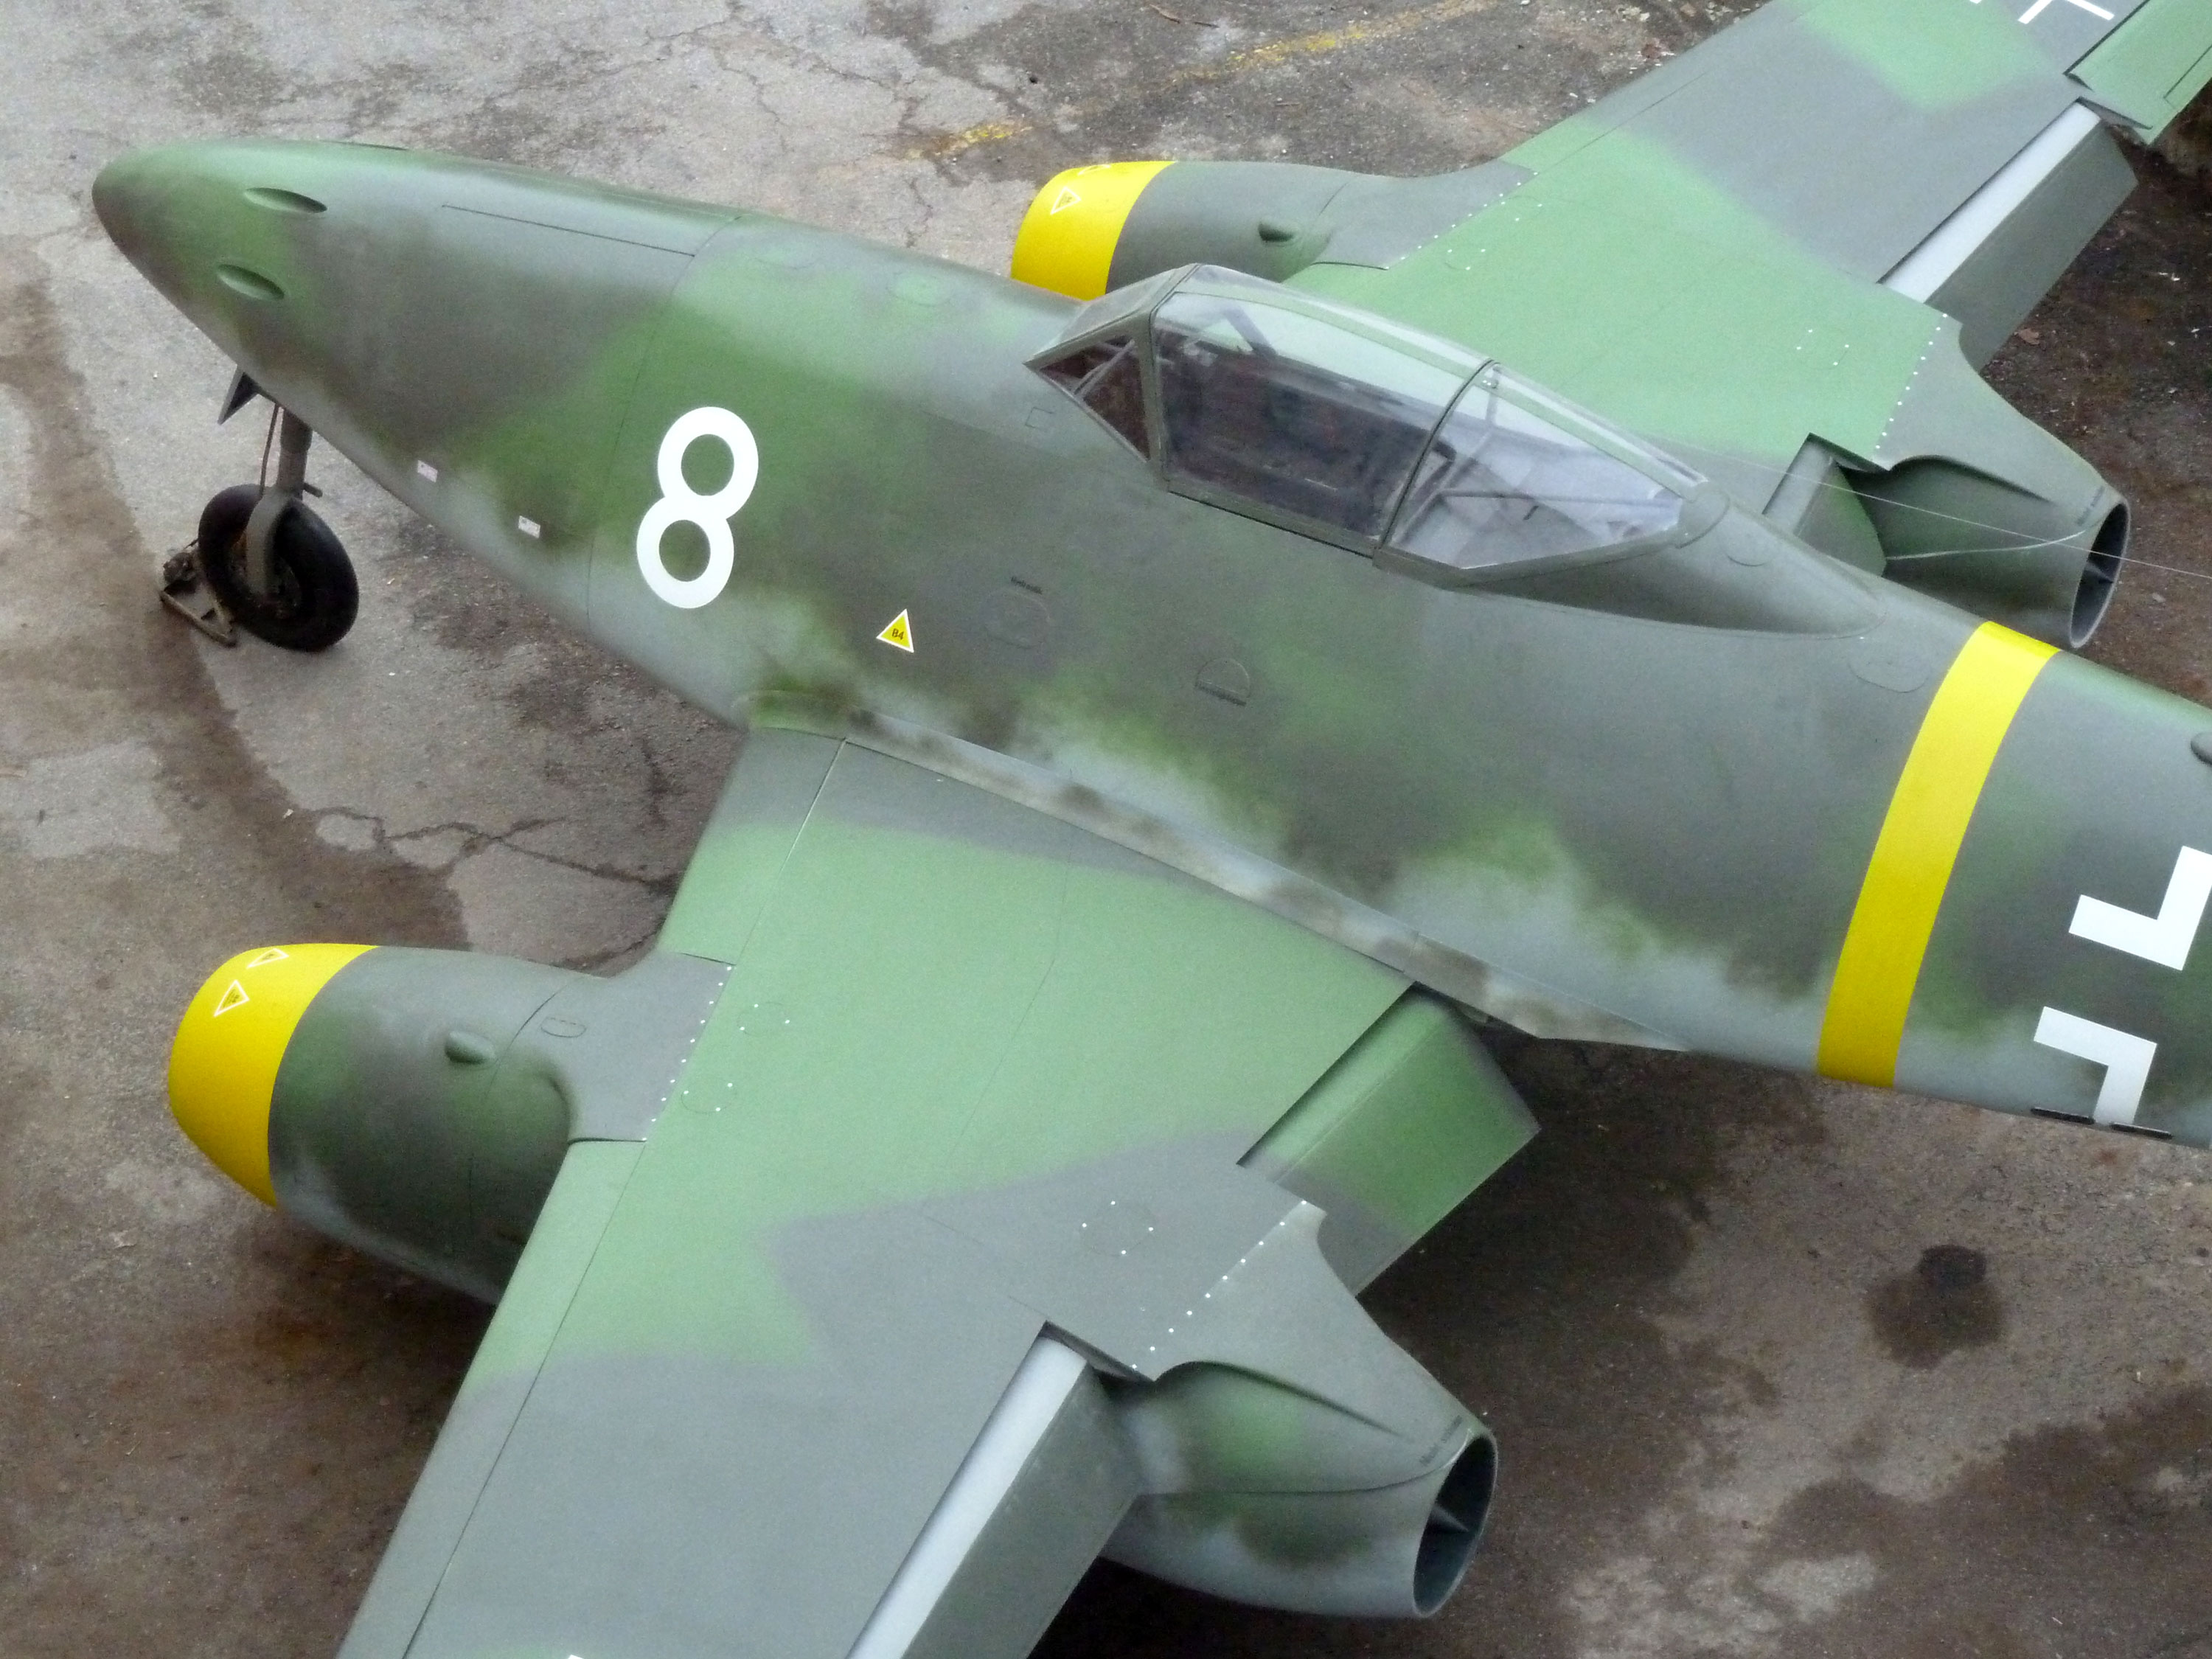 Aircraft Listing - ME-262 Schwalbe listed for sale